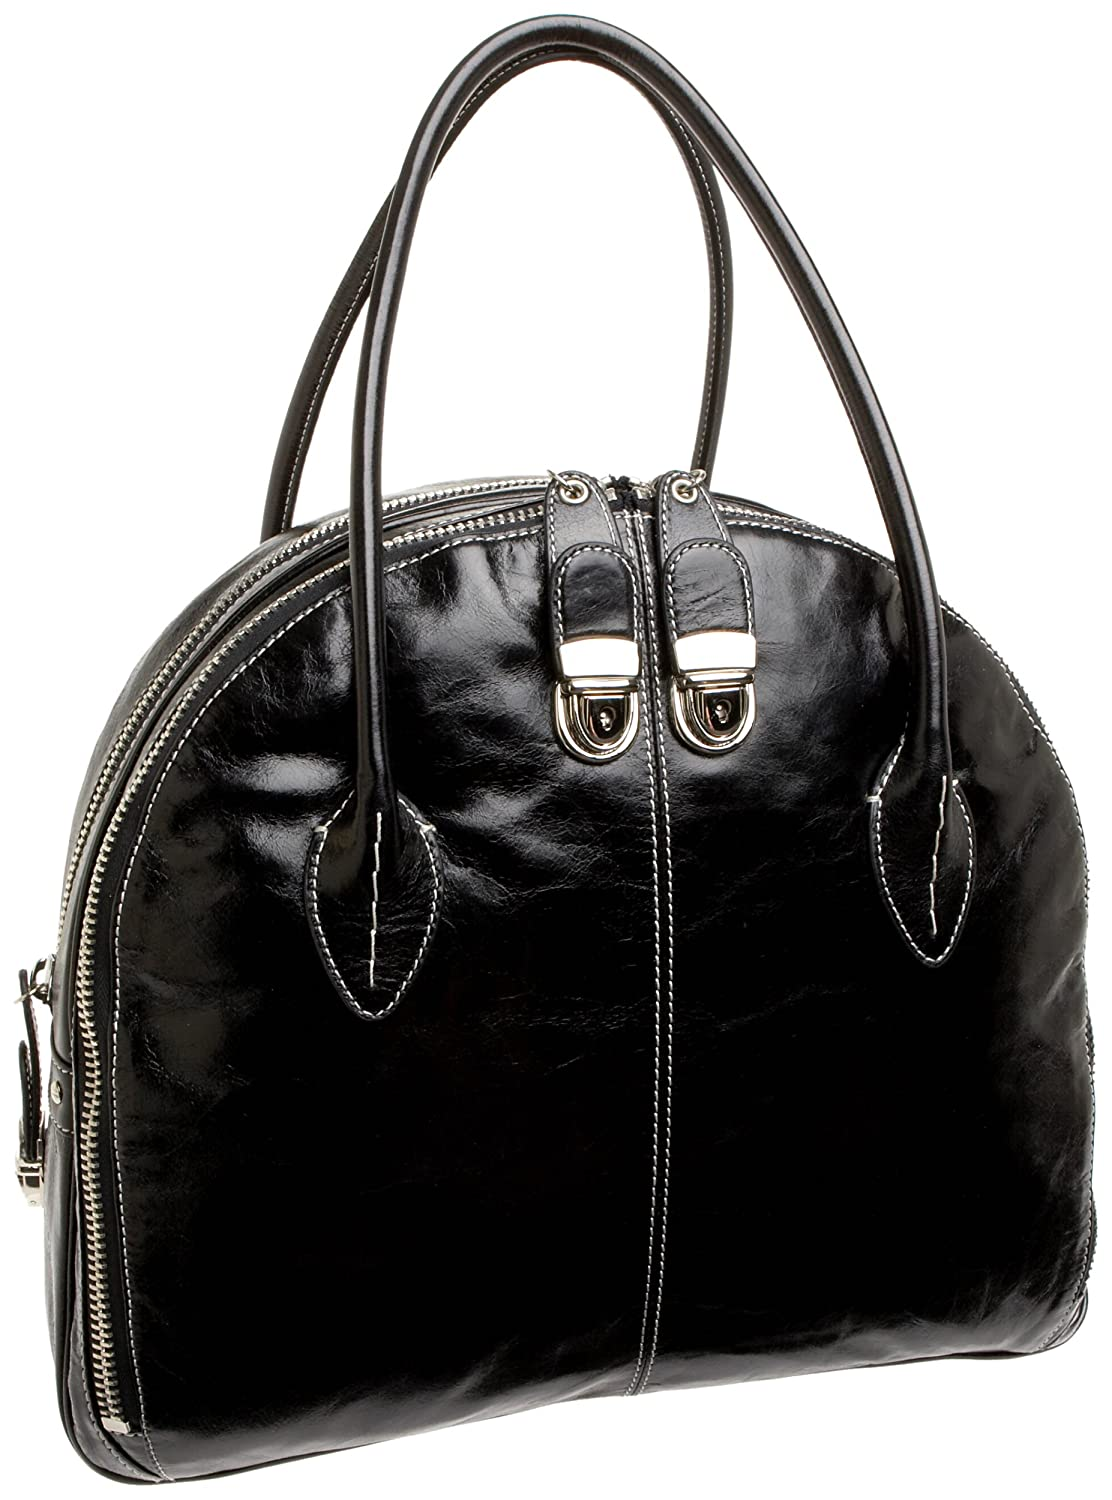 Cynthia Rowley Ginny Athene Bowler - Free Overnight Shipping & Return Shipping: Endless.com